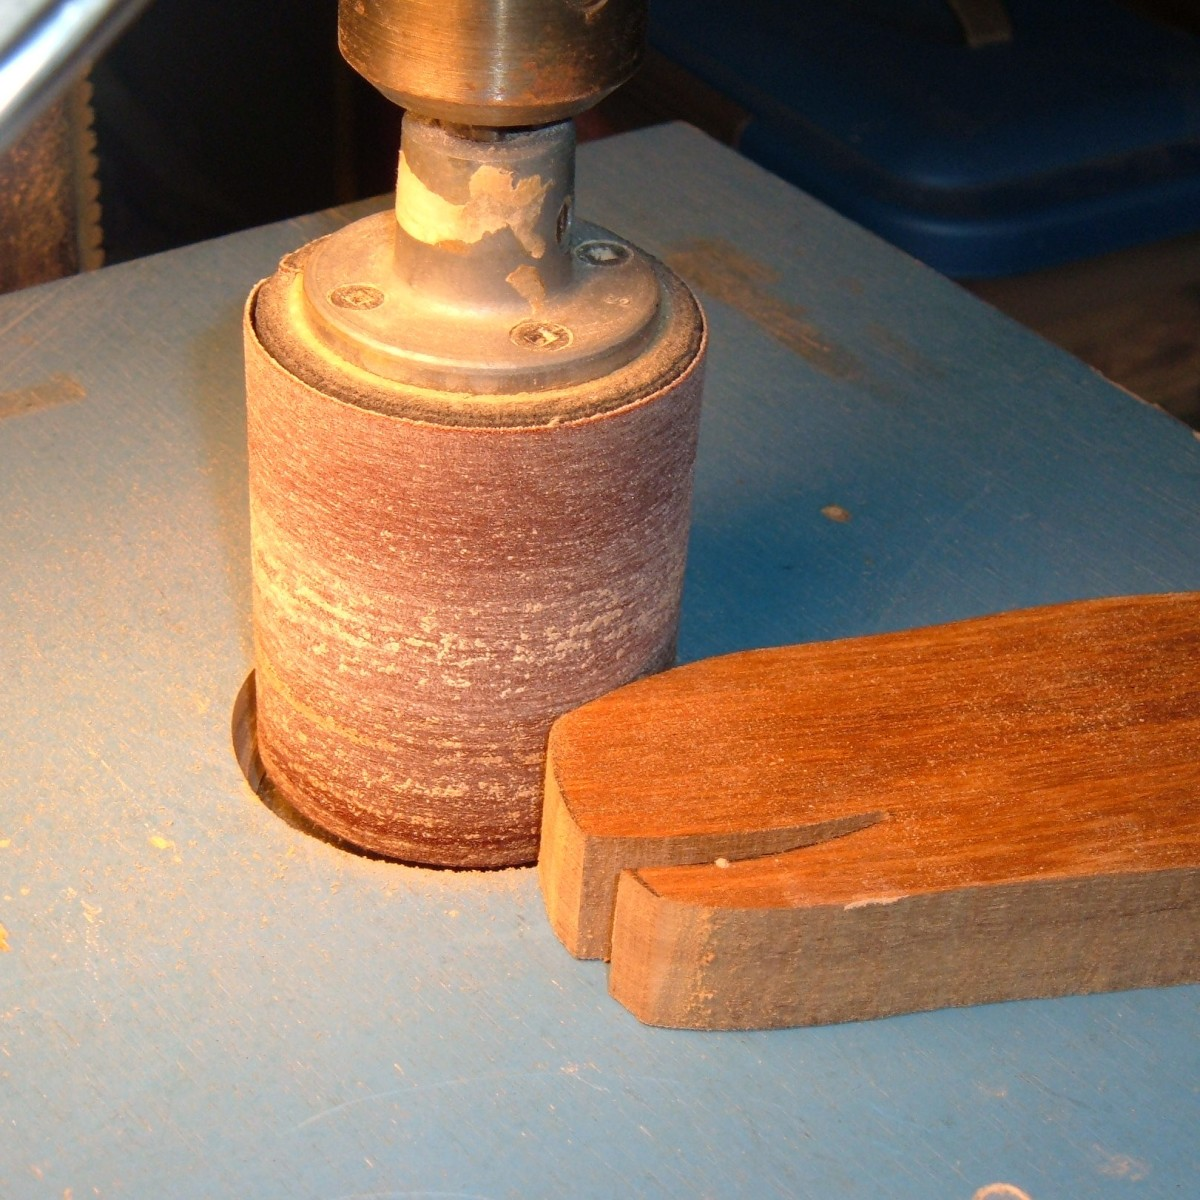 Drill Press Sanding Drums: Turn Your Drill Press into a Sanding Station